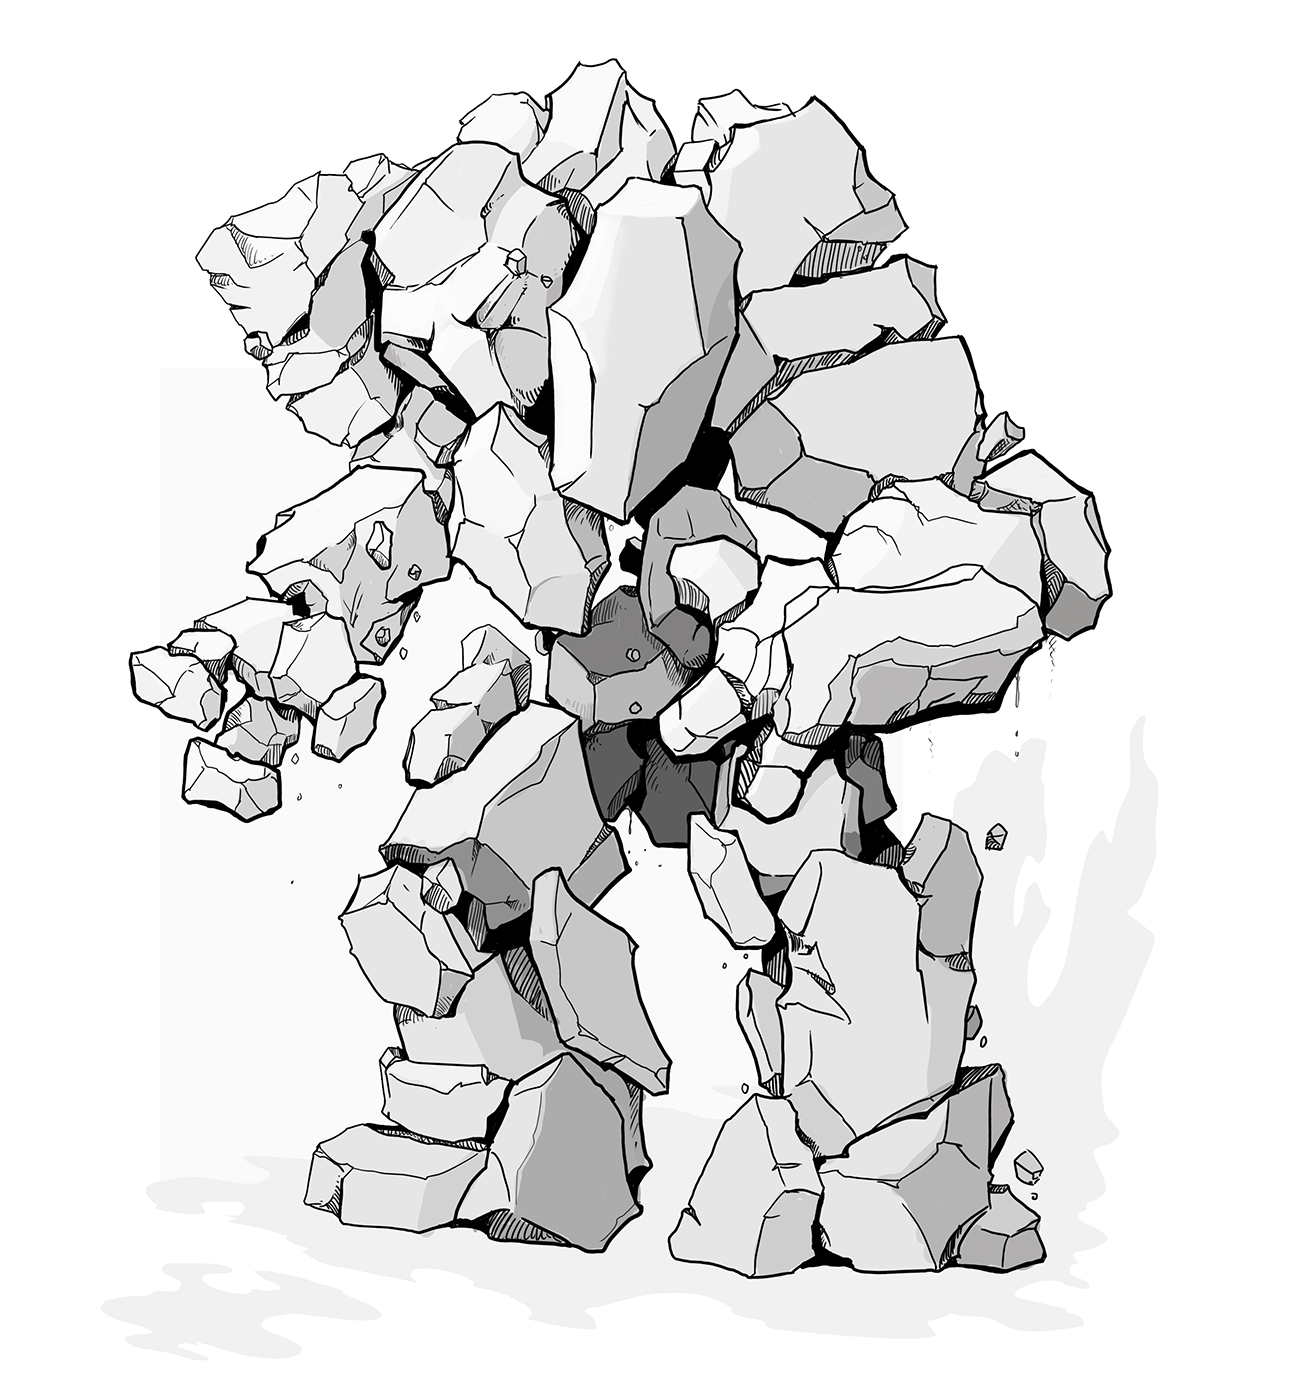 File:DnD Stone Elemental.png.